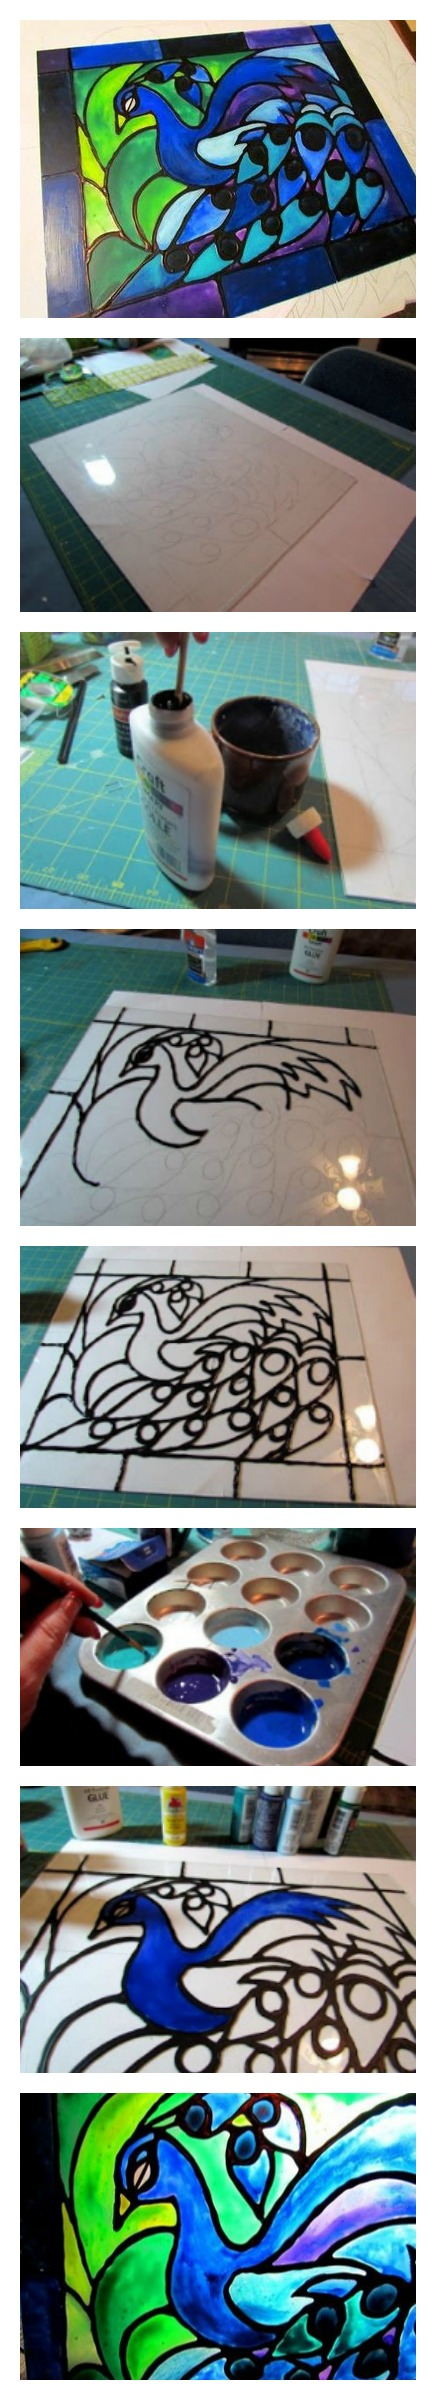 Faux-stained-glass-created-from-acrylic-paint-and-school-glue-wallpaper-wp3605501